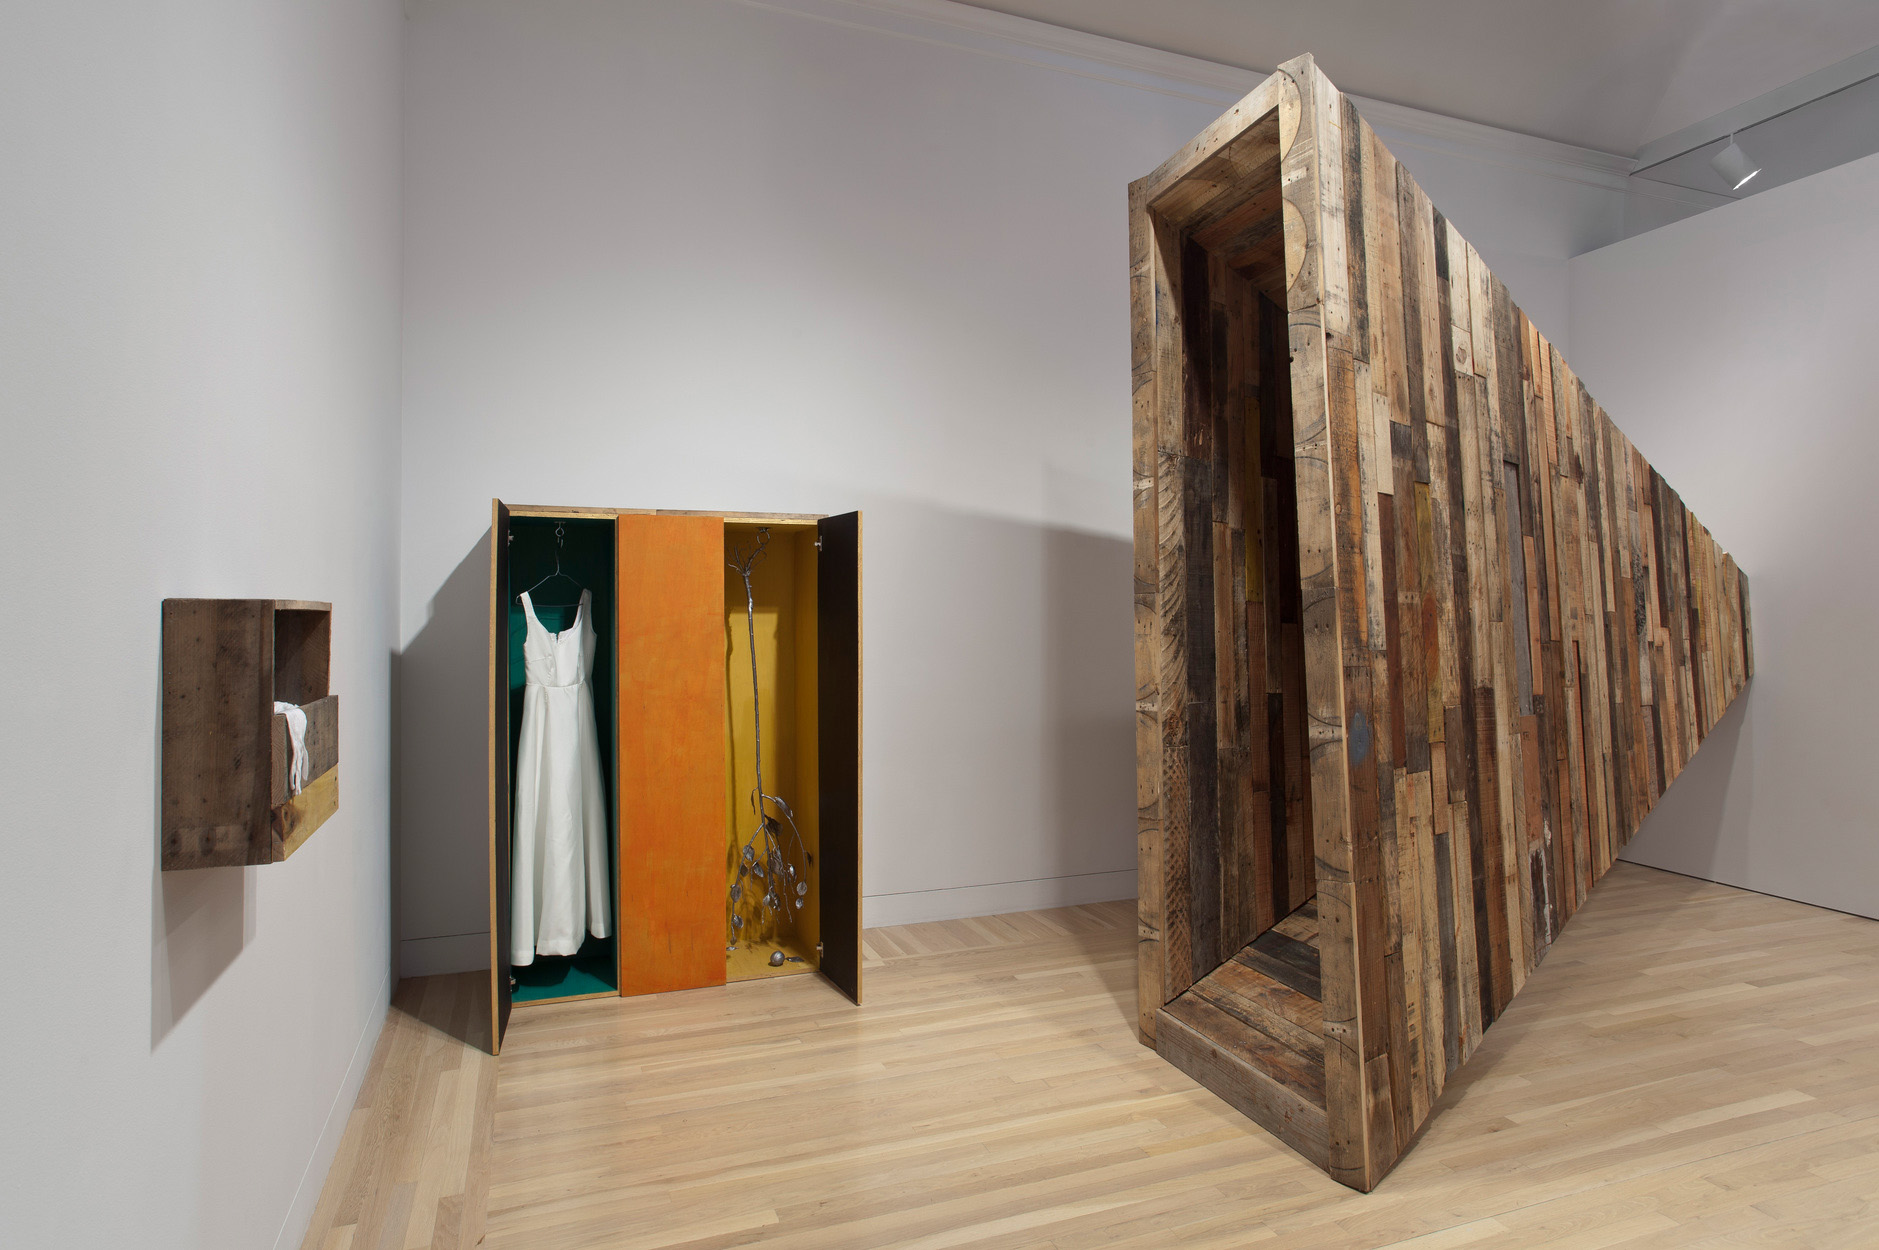 Liz Glynn, <em>Made in LA 2012</em>, 2012. Installation view at the Hammer Museum, Los Angeles. Photo: Brian Forrest. Courtesy of the Hammer Museum.